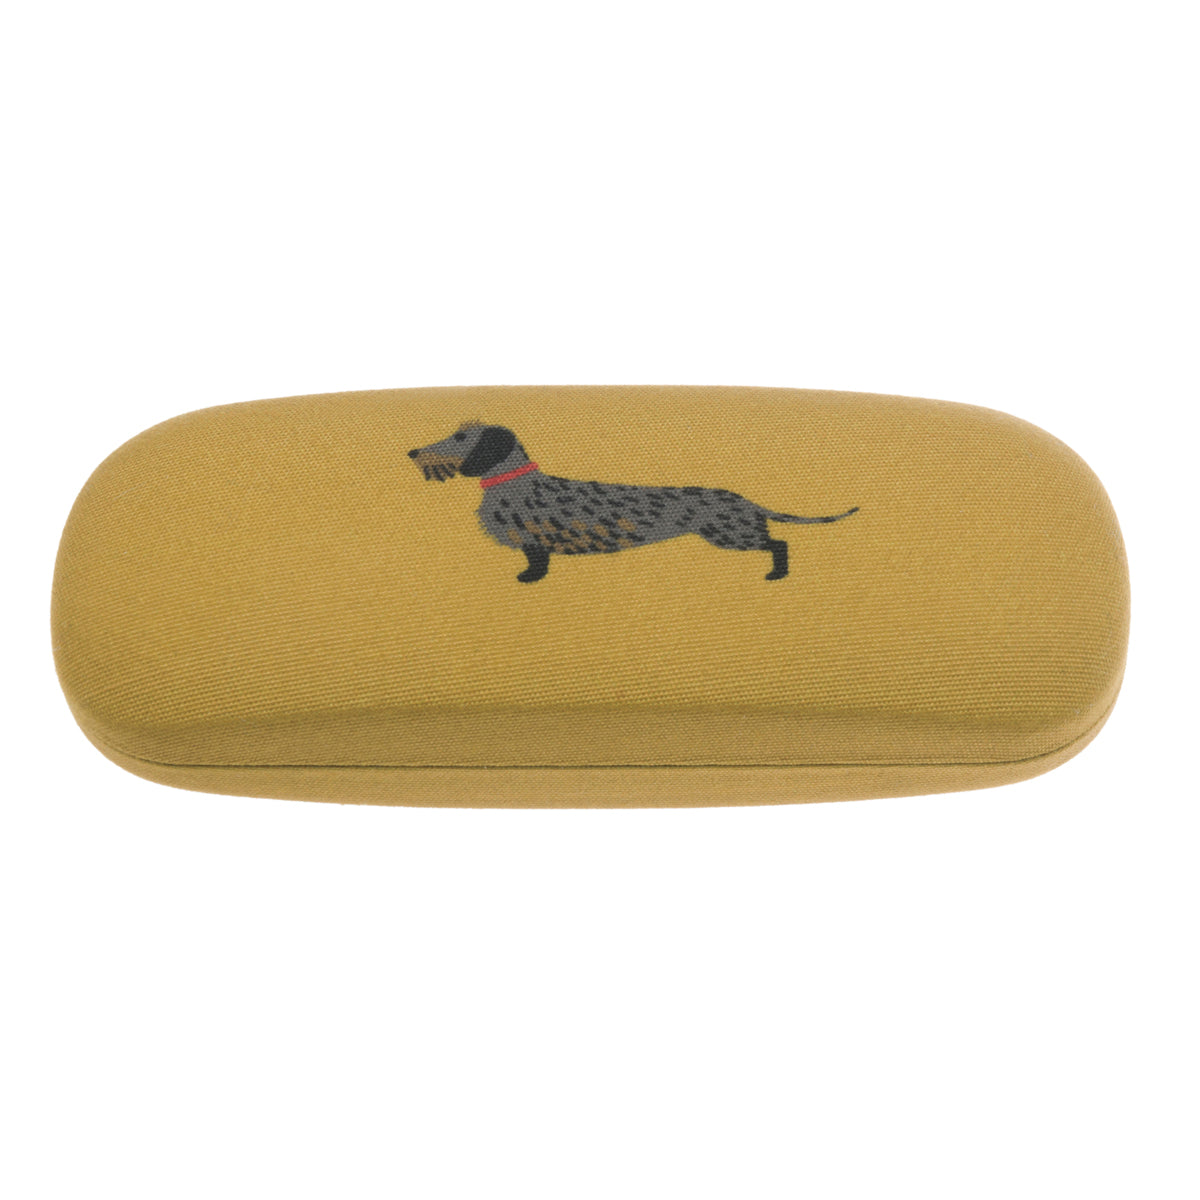 Dachshund Glasses Case by Sophie Allport